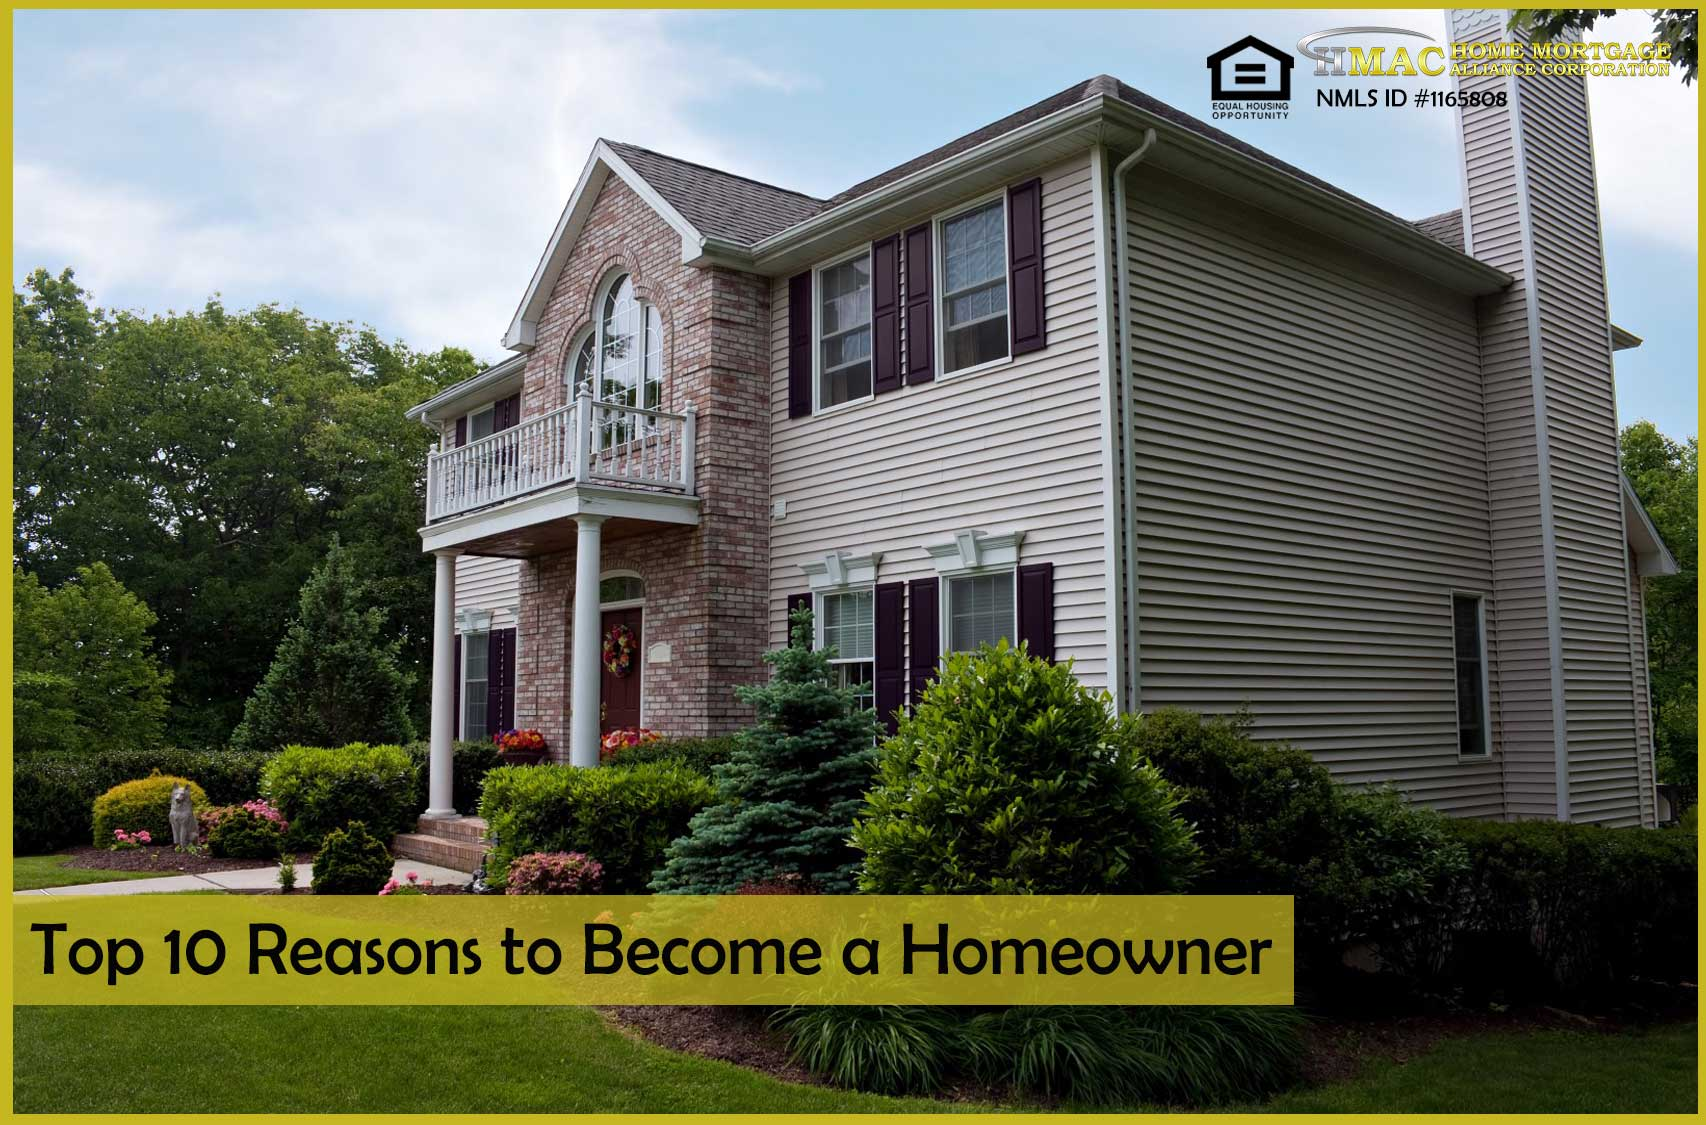 Become a Homeowner Now